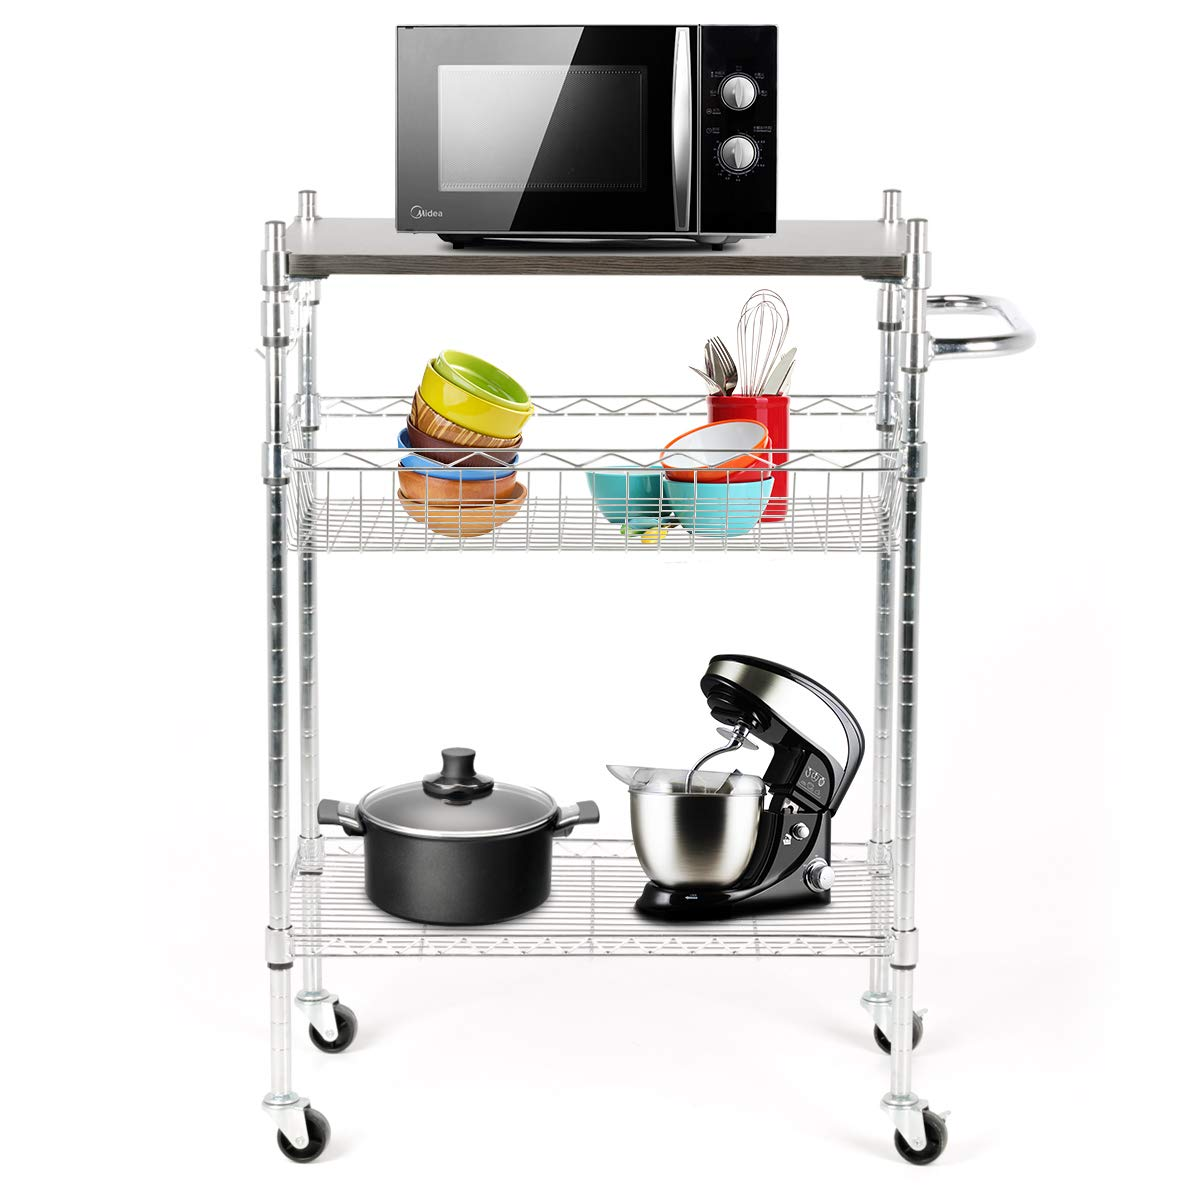 BOCCA Supreme Kitchen Cart on 2 Locking Wheels with Handle Bar- Chrome Microwave Stand with 3 Tiers,Load Bearing of Wheels Moving 110 LBS, Immoble 264LBS